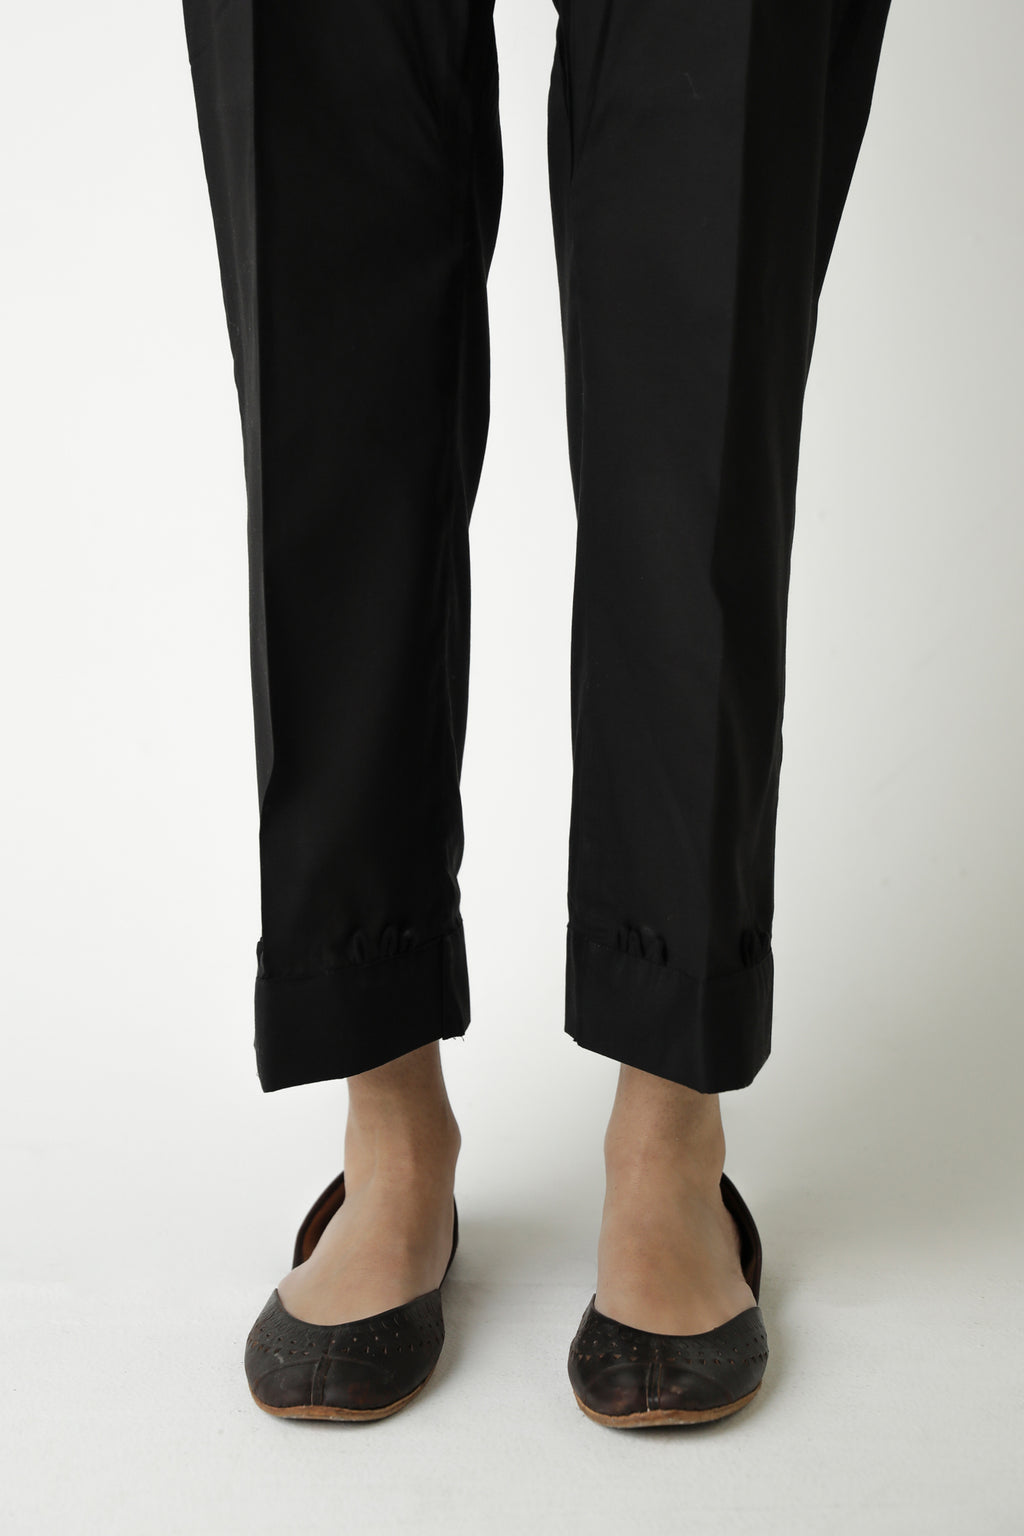 STRAIGHT TROUSER (WBC111222) - Ethnic by Outfitters